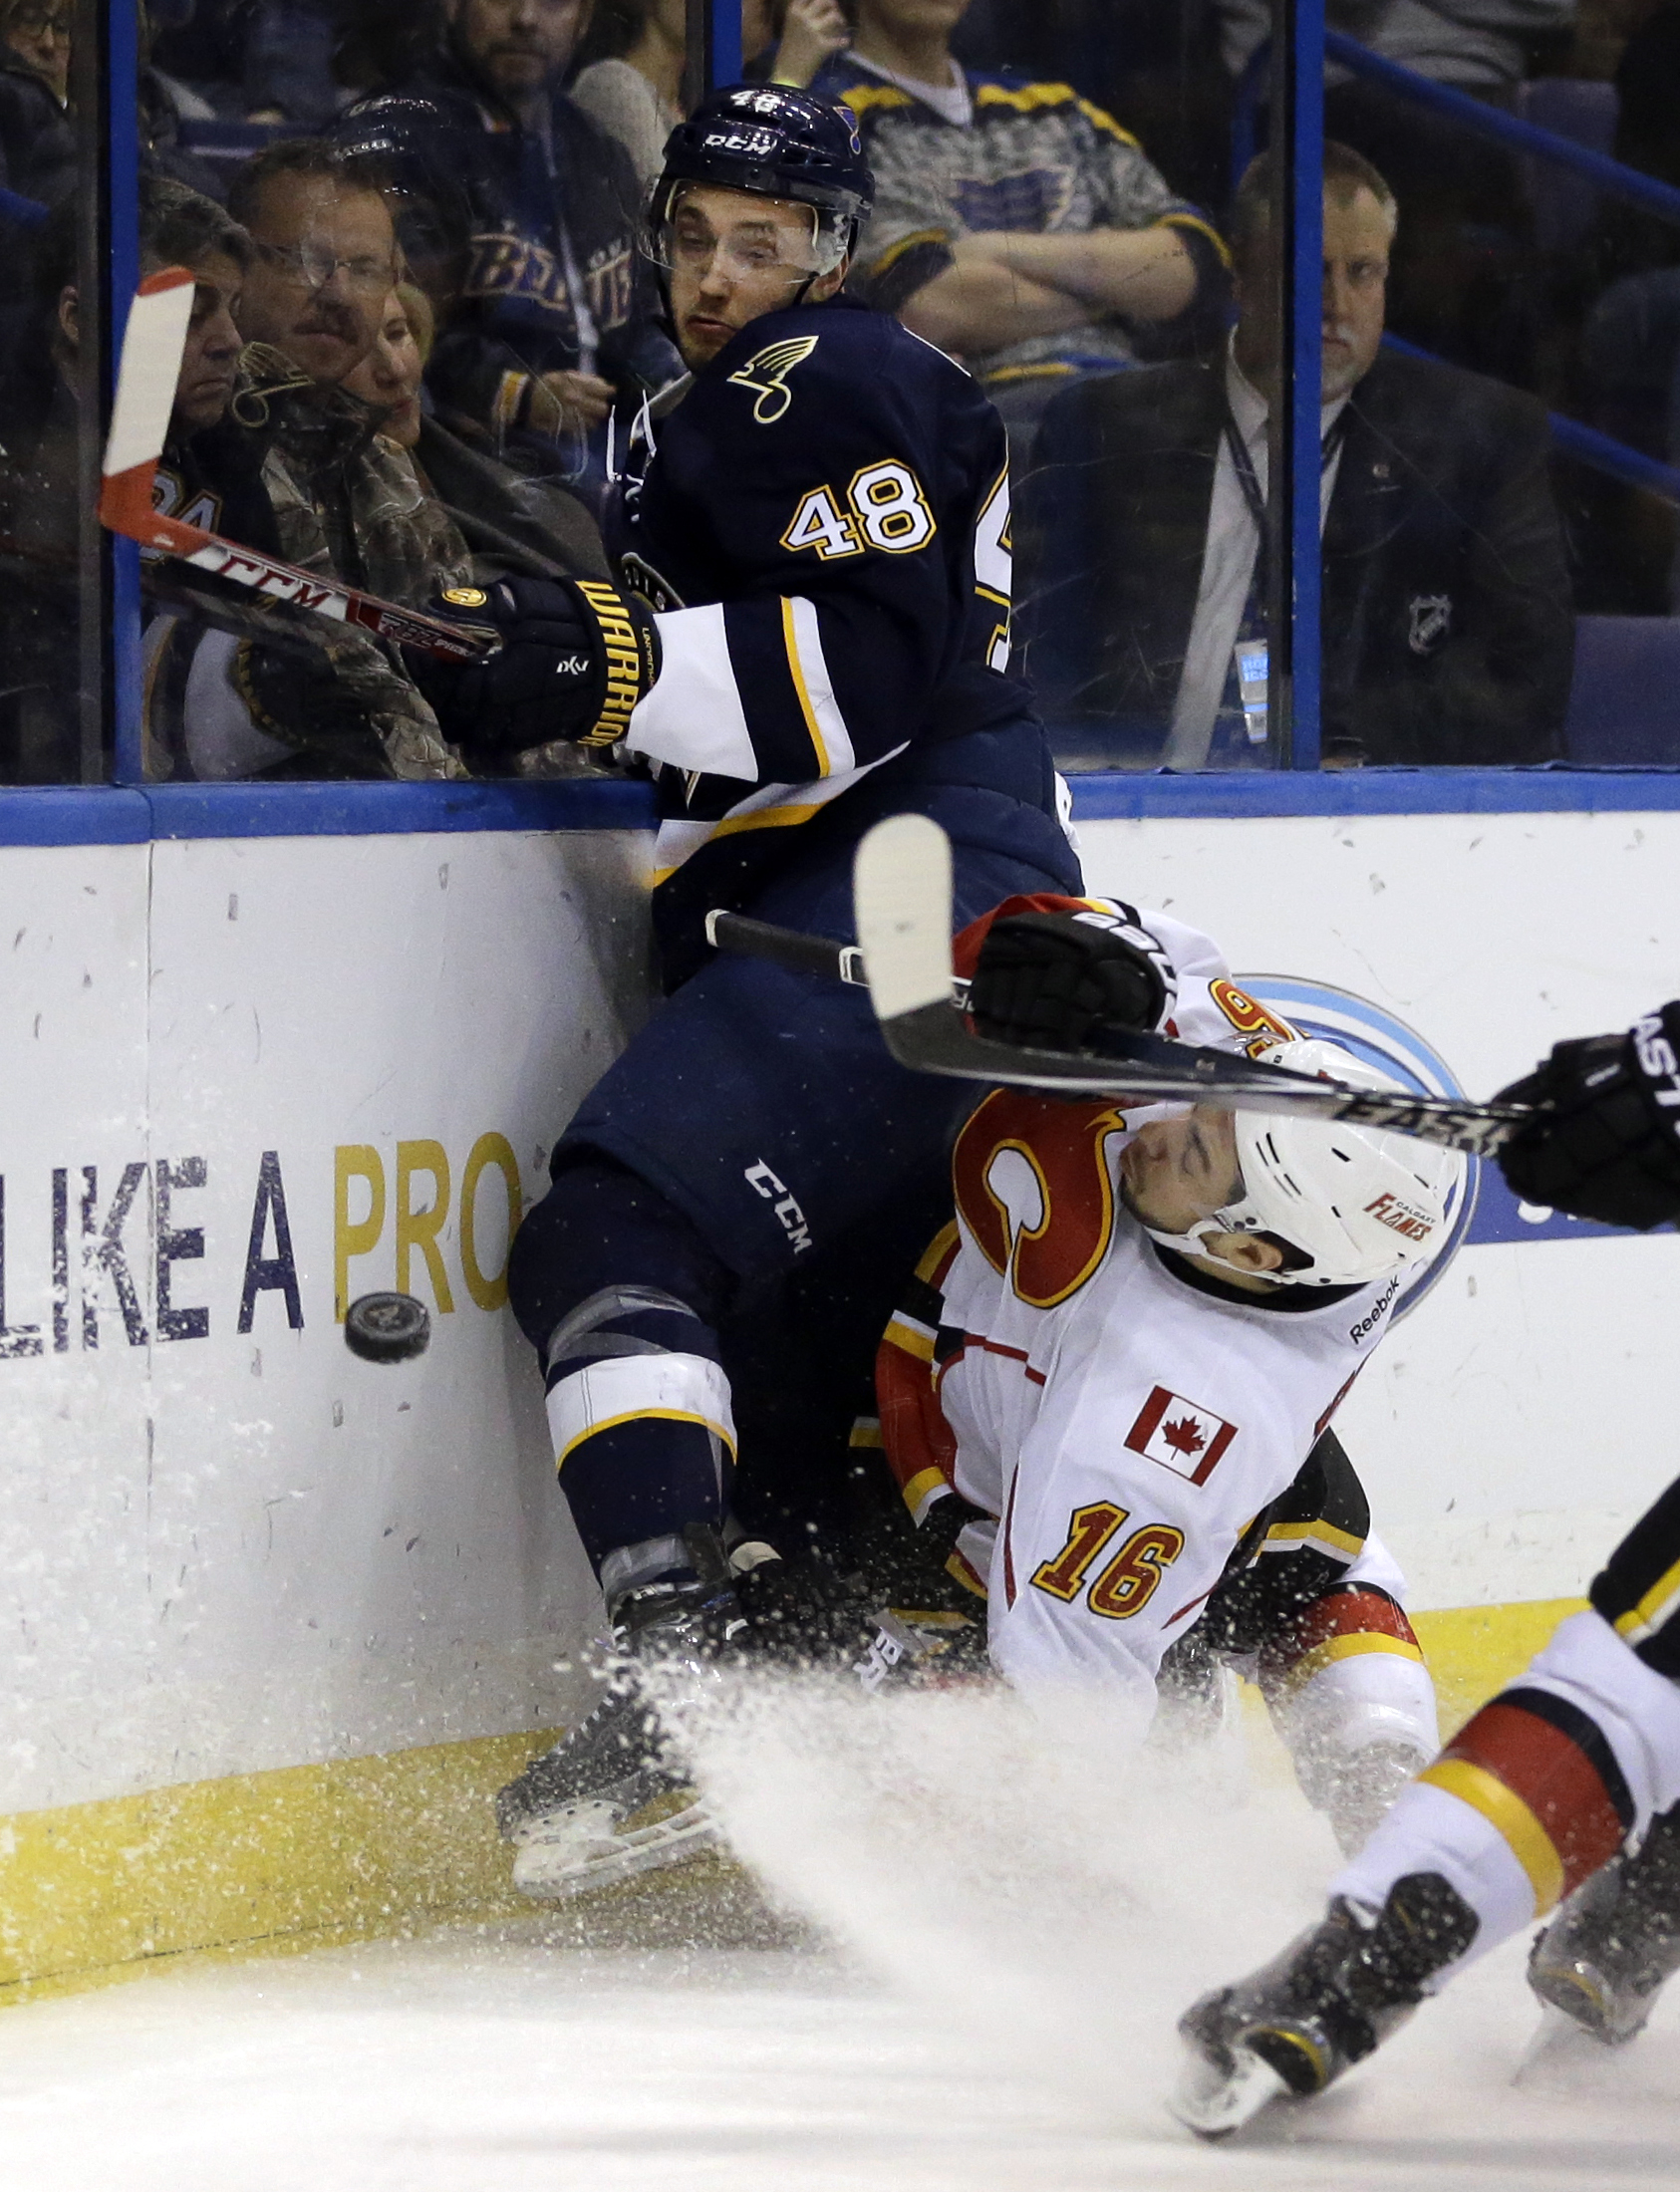 Calgary Flames' Josh Jooris, right, slams into the boards along with St. Louis Blues' Petteri Lindbohm, of Finland, during the first period of an NHL hockey game Saturday, Dec. 19, 2015, in St. Louis. (AP Photo/Jeff Roberson)